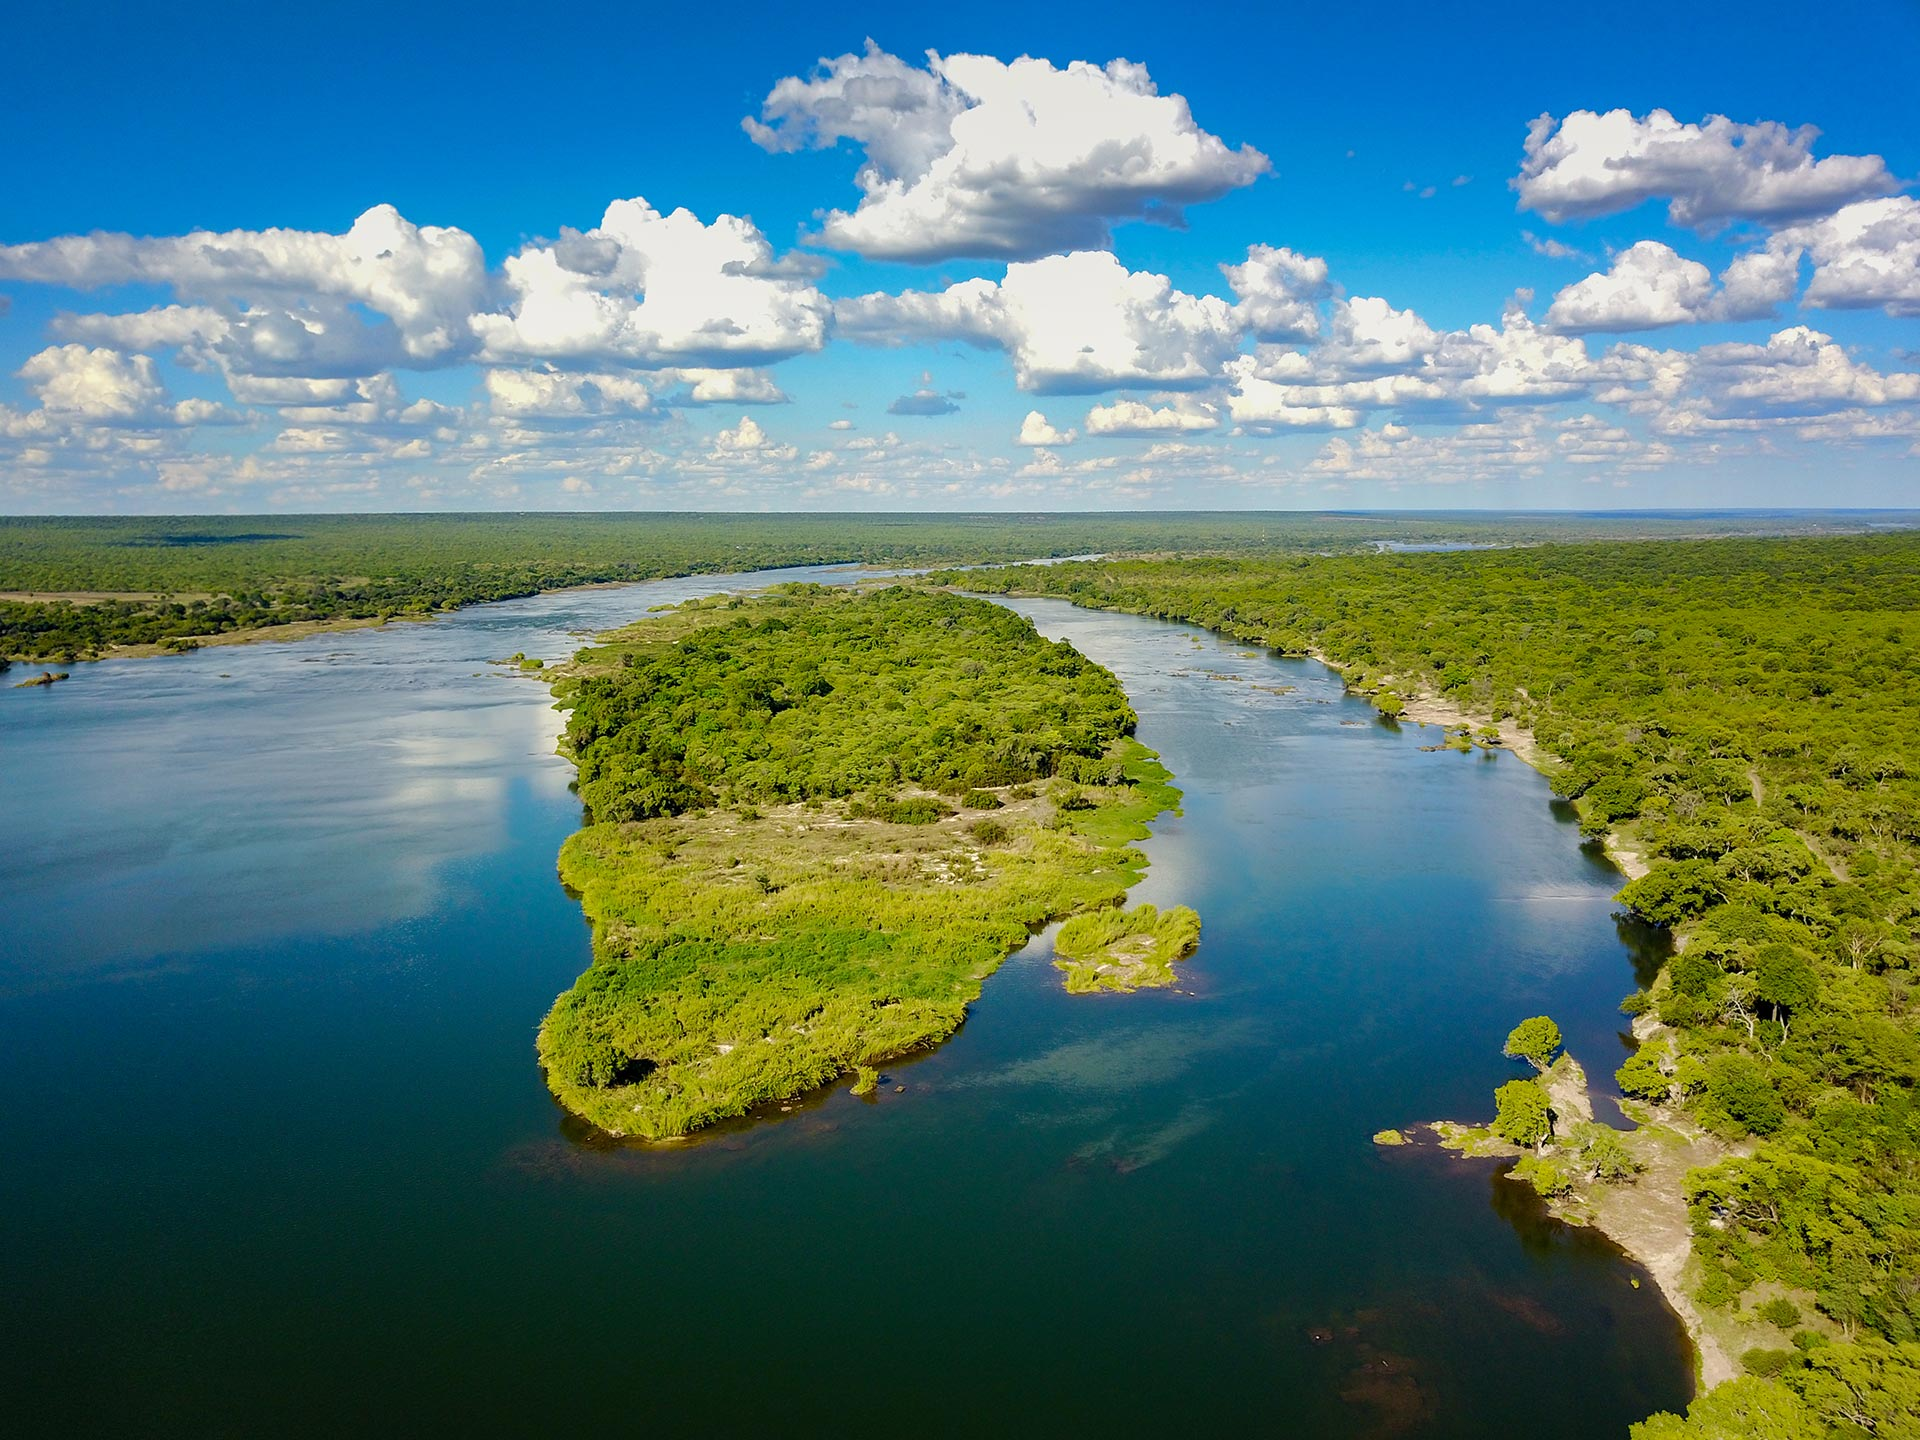 Tsowa Safari Island - Zambezi National Park